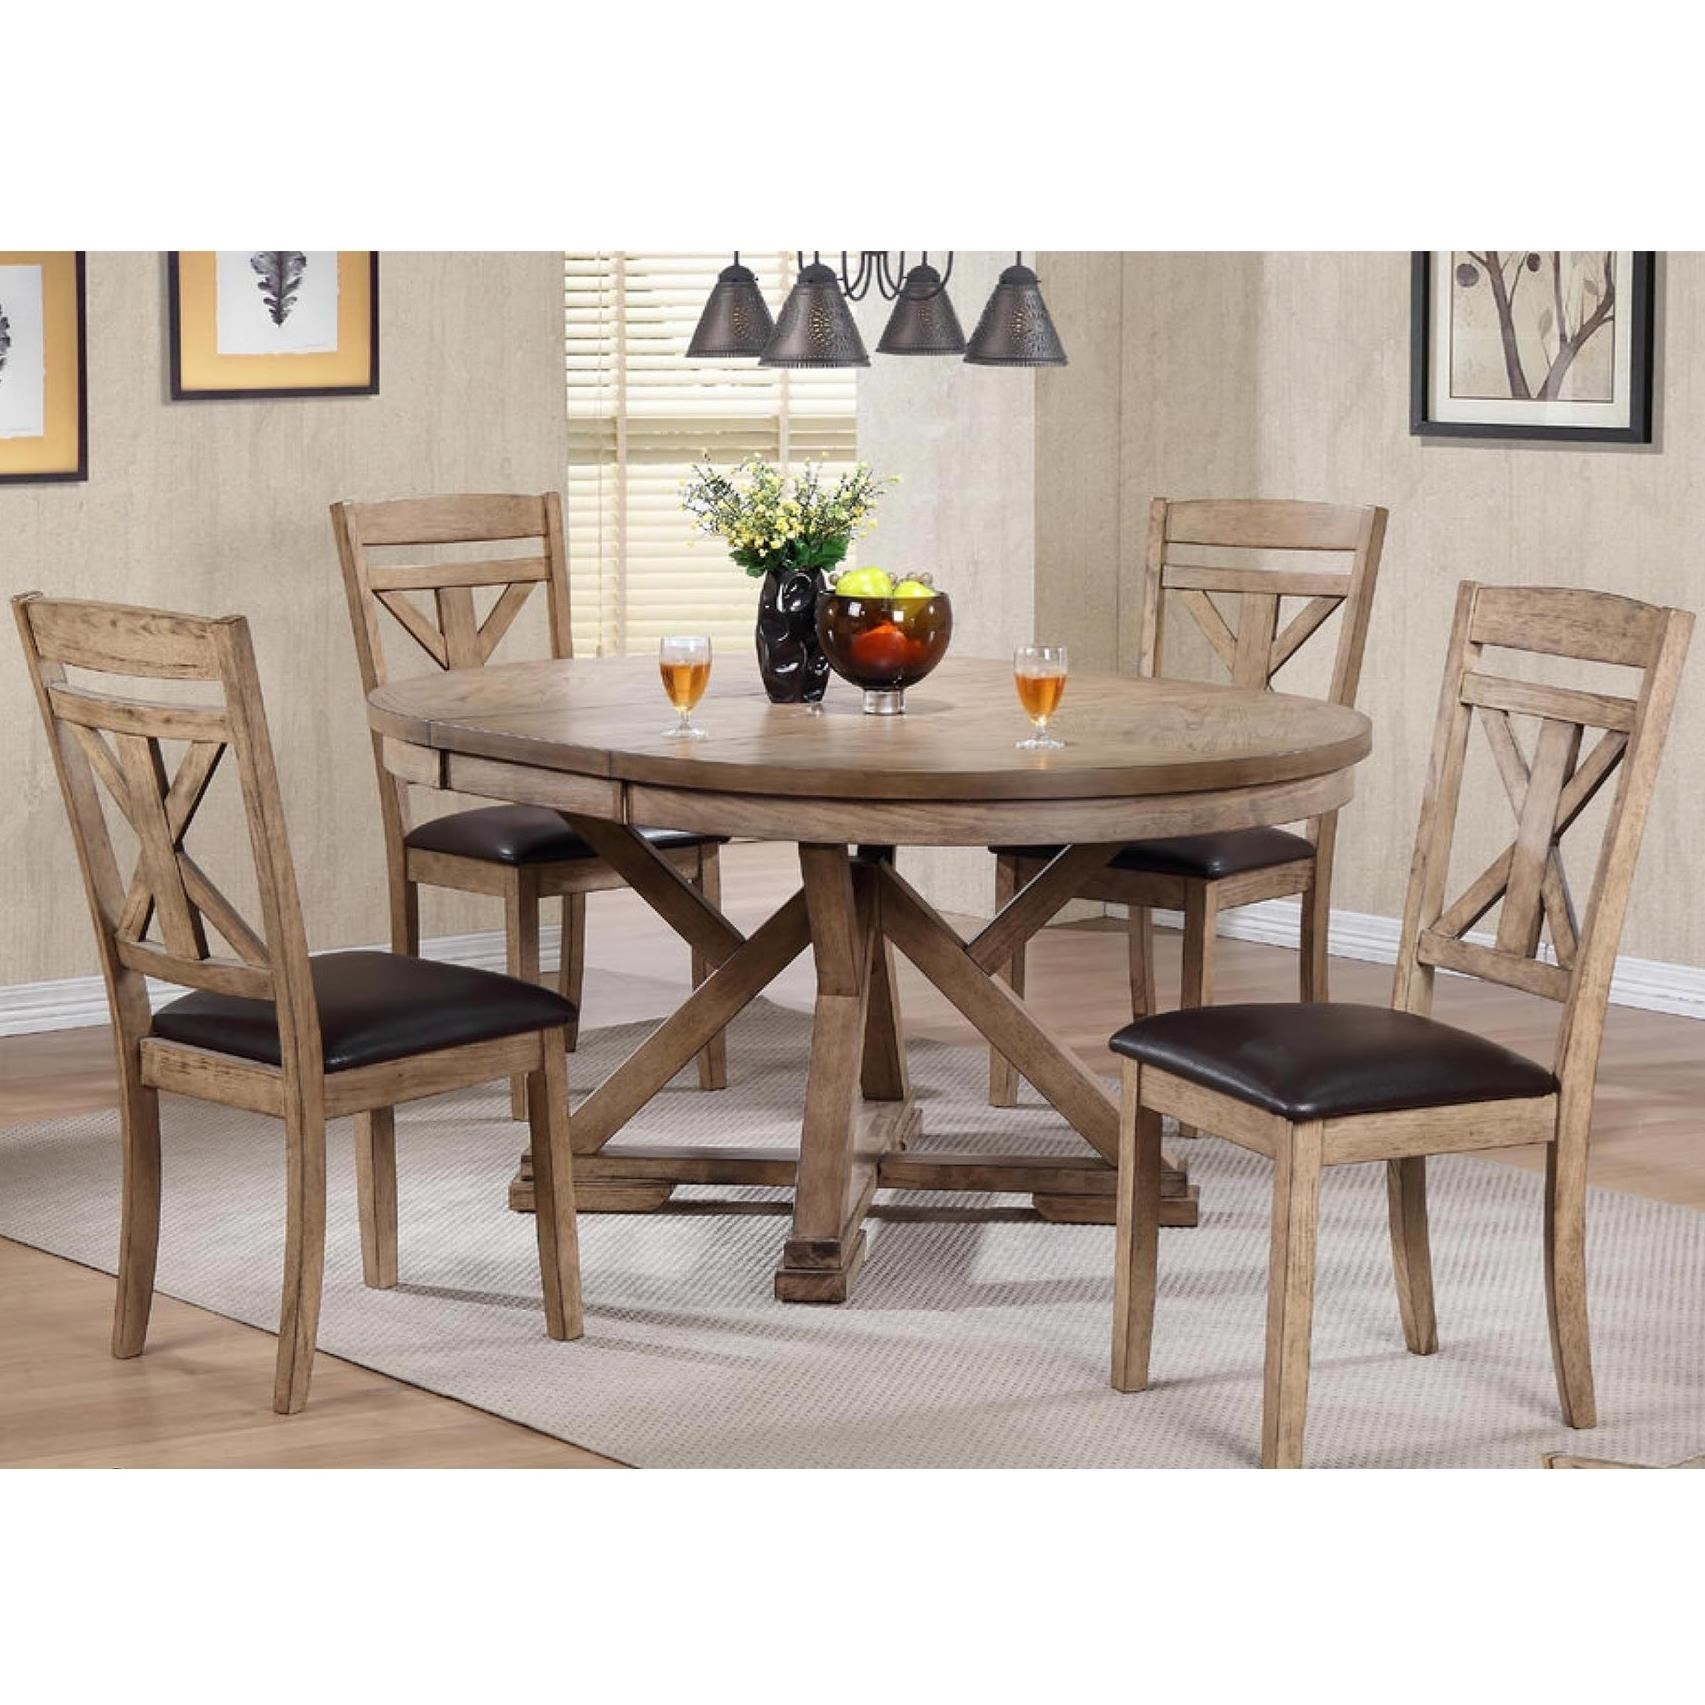 Grandview 5 Piece Dining Set By Winners Only